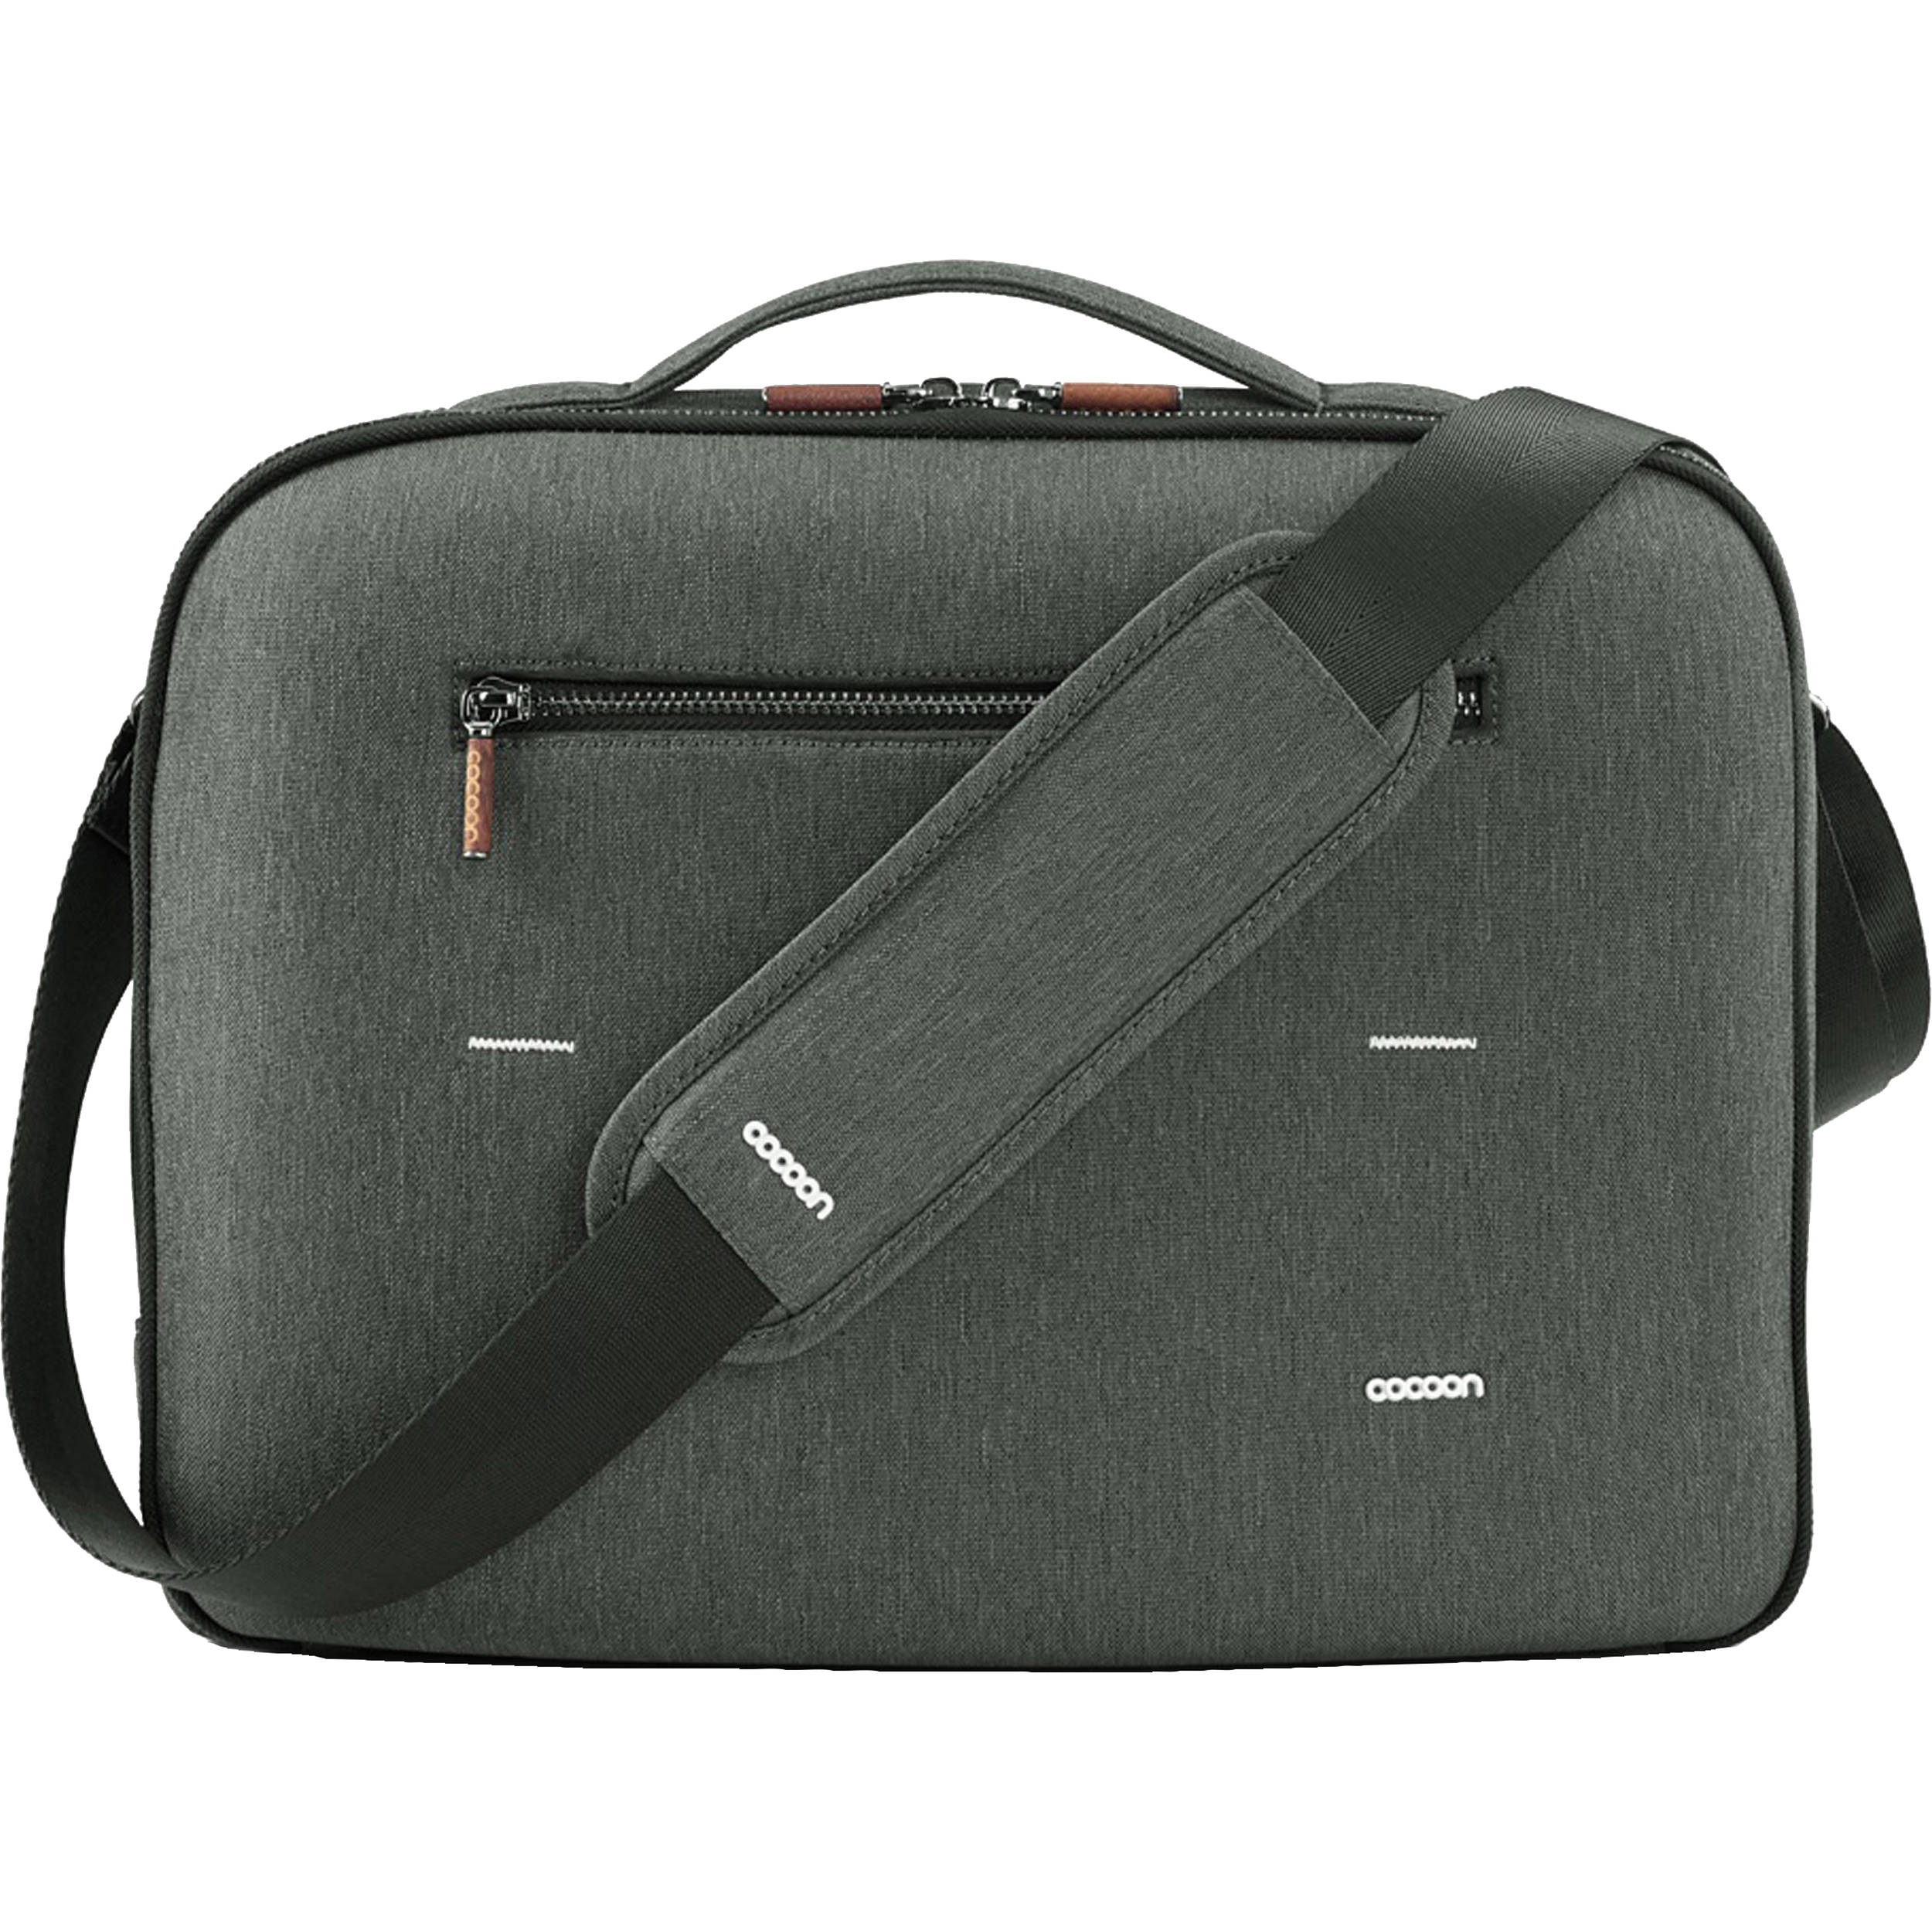 Co Graphite Brief 15 Macbook Pro Laptop Bag With